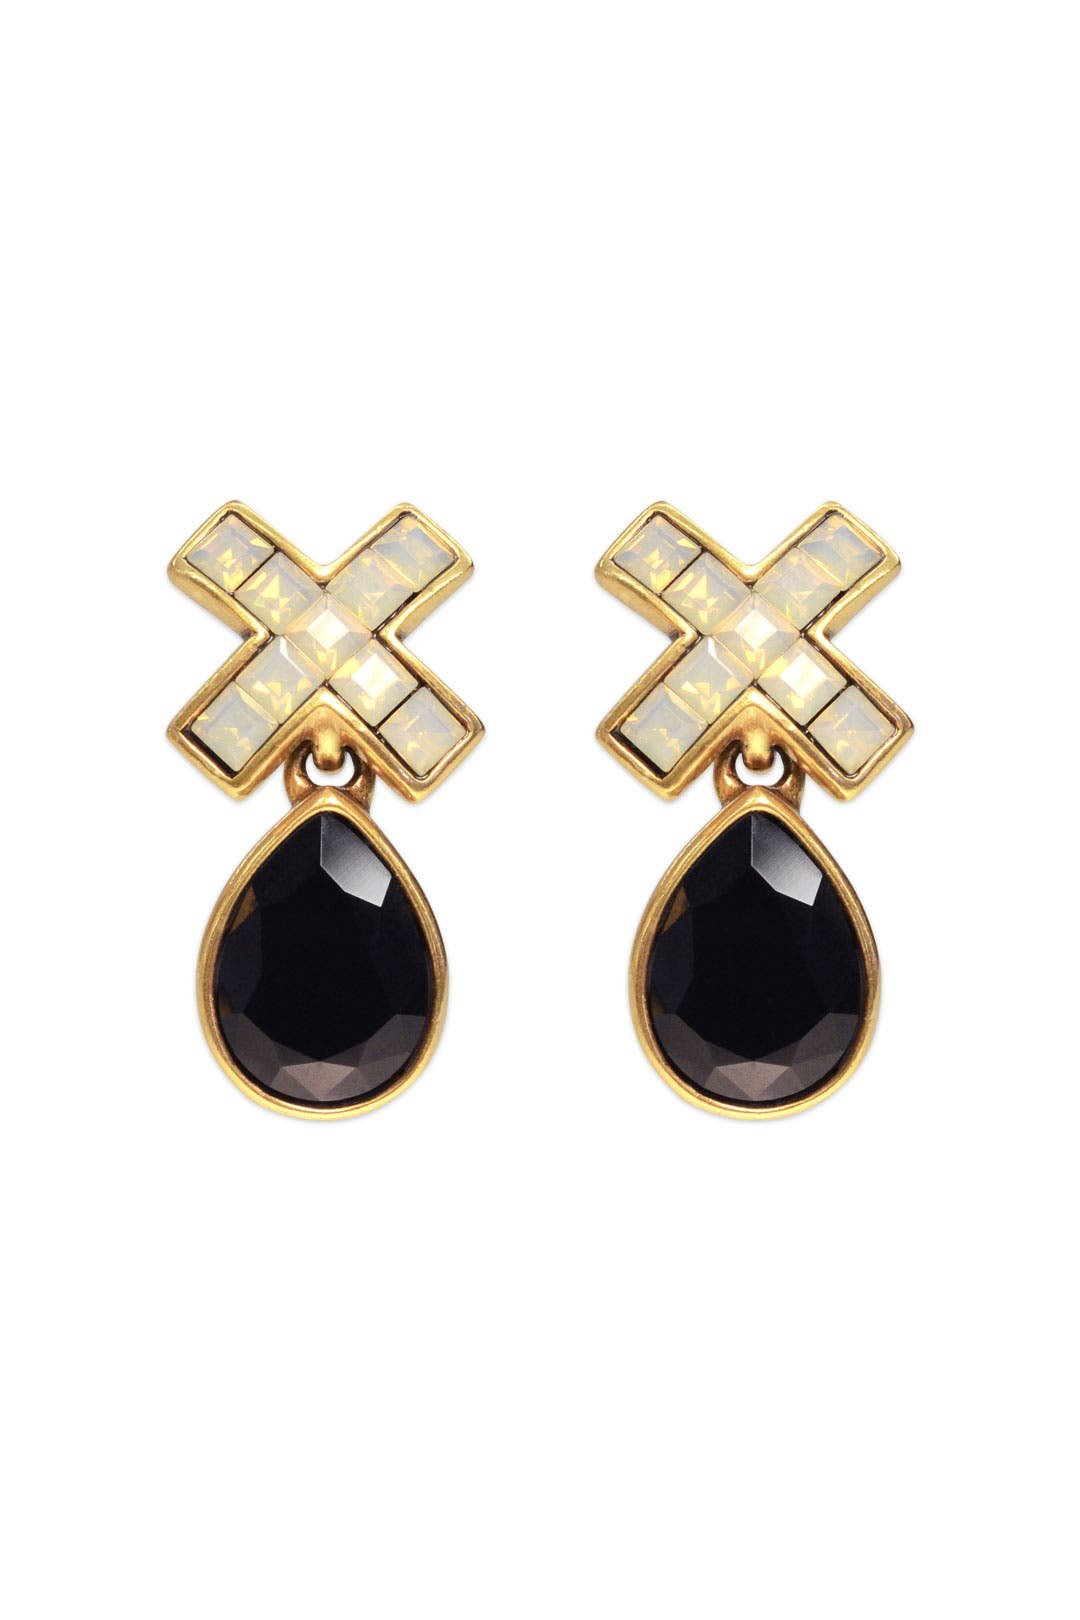 Noir Marks the Spot Earring by Oscar de la Renta